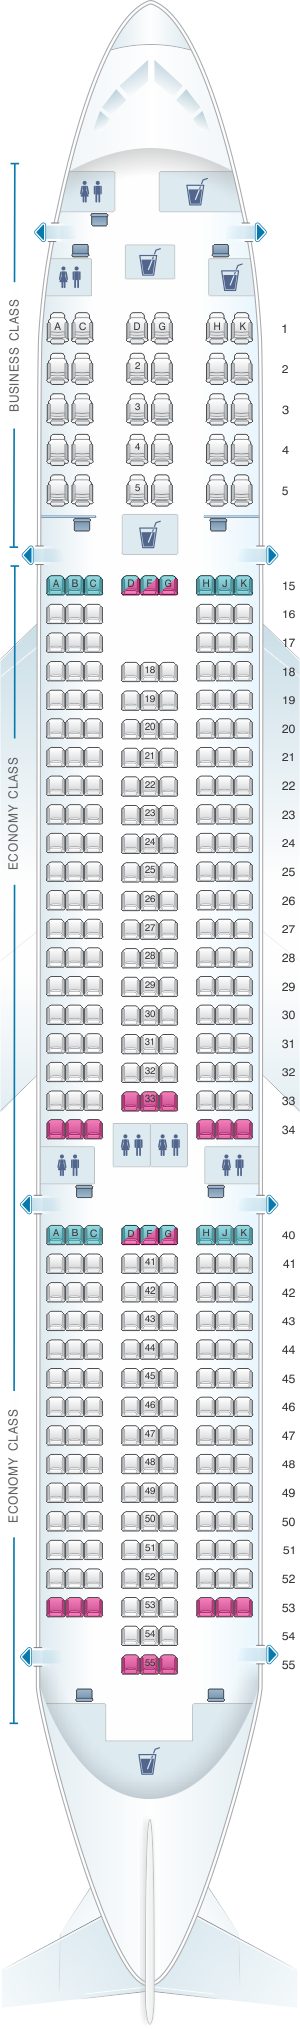 Seat map for Air Europa Boeing B787 9